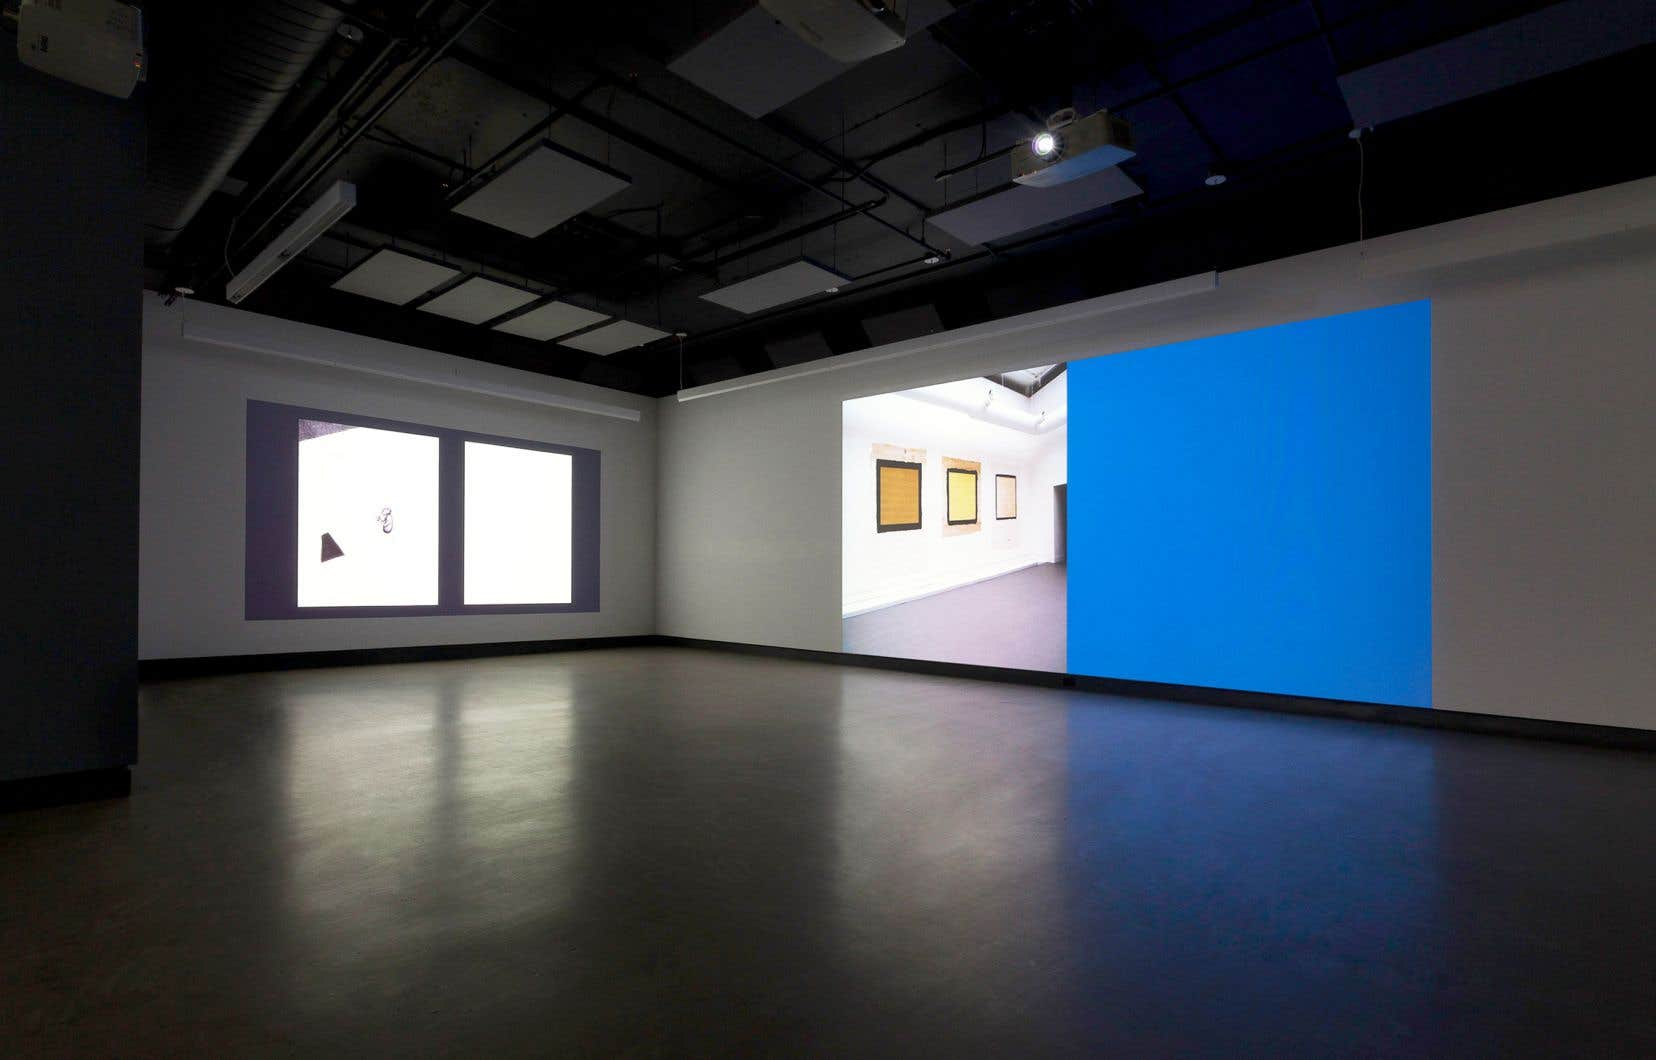 Vue d'une installation de l'exposition «Moving Through Time and Space», de l'artiste David Tomas décédé le 3 avril 2019.